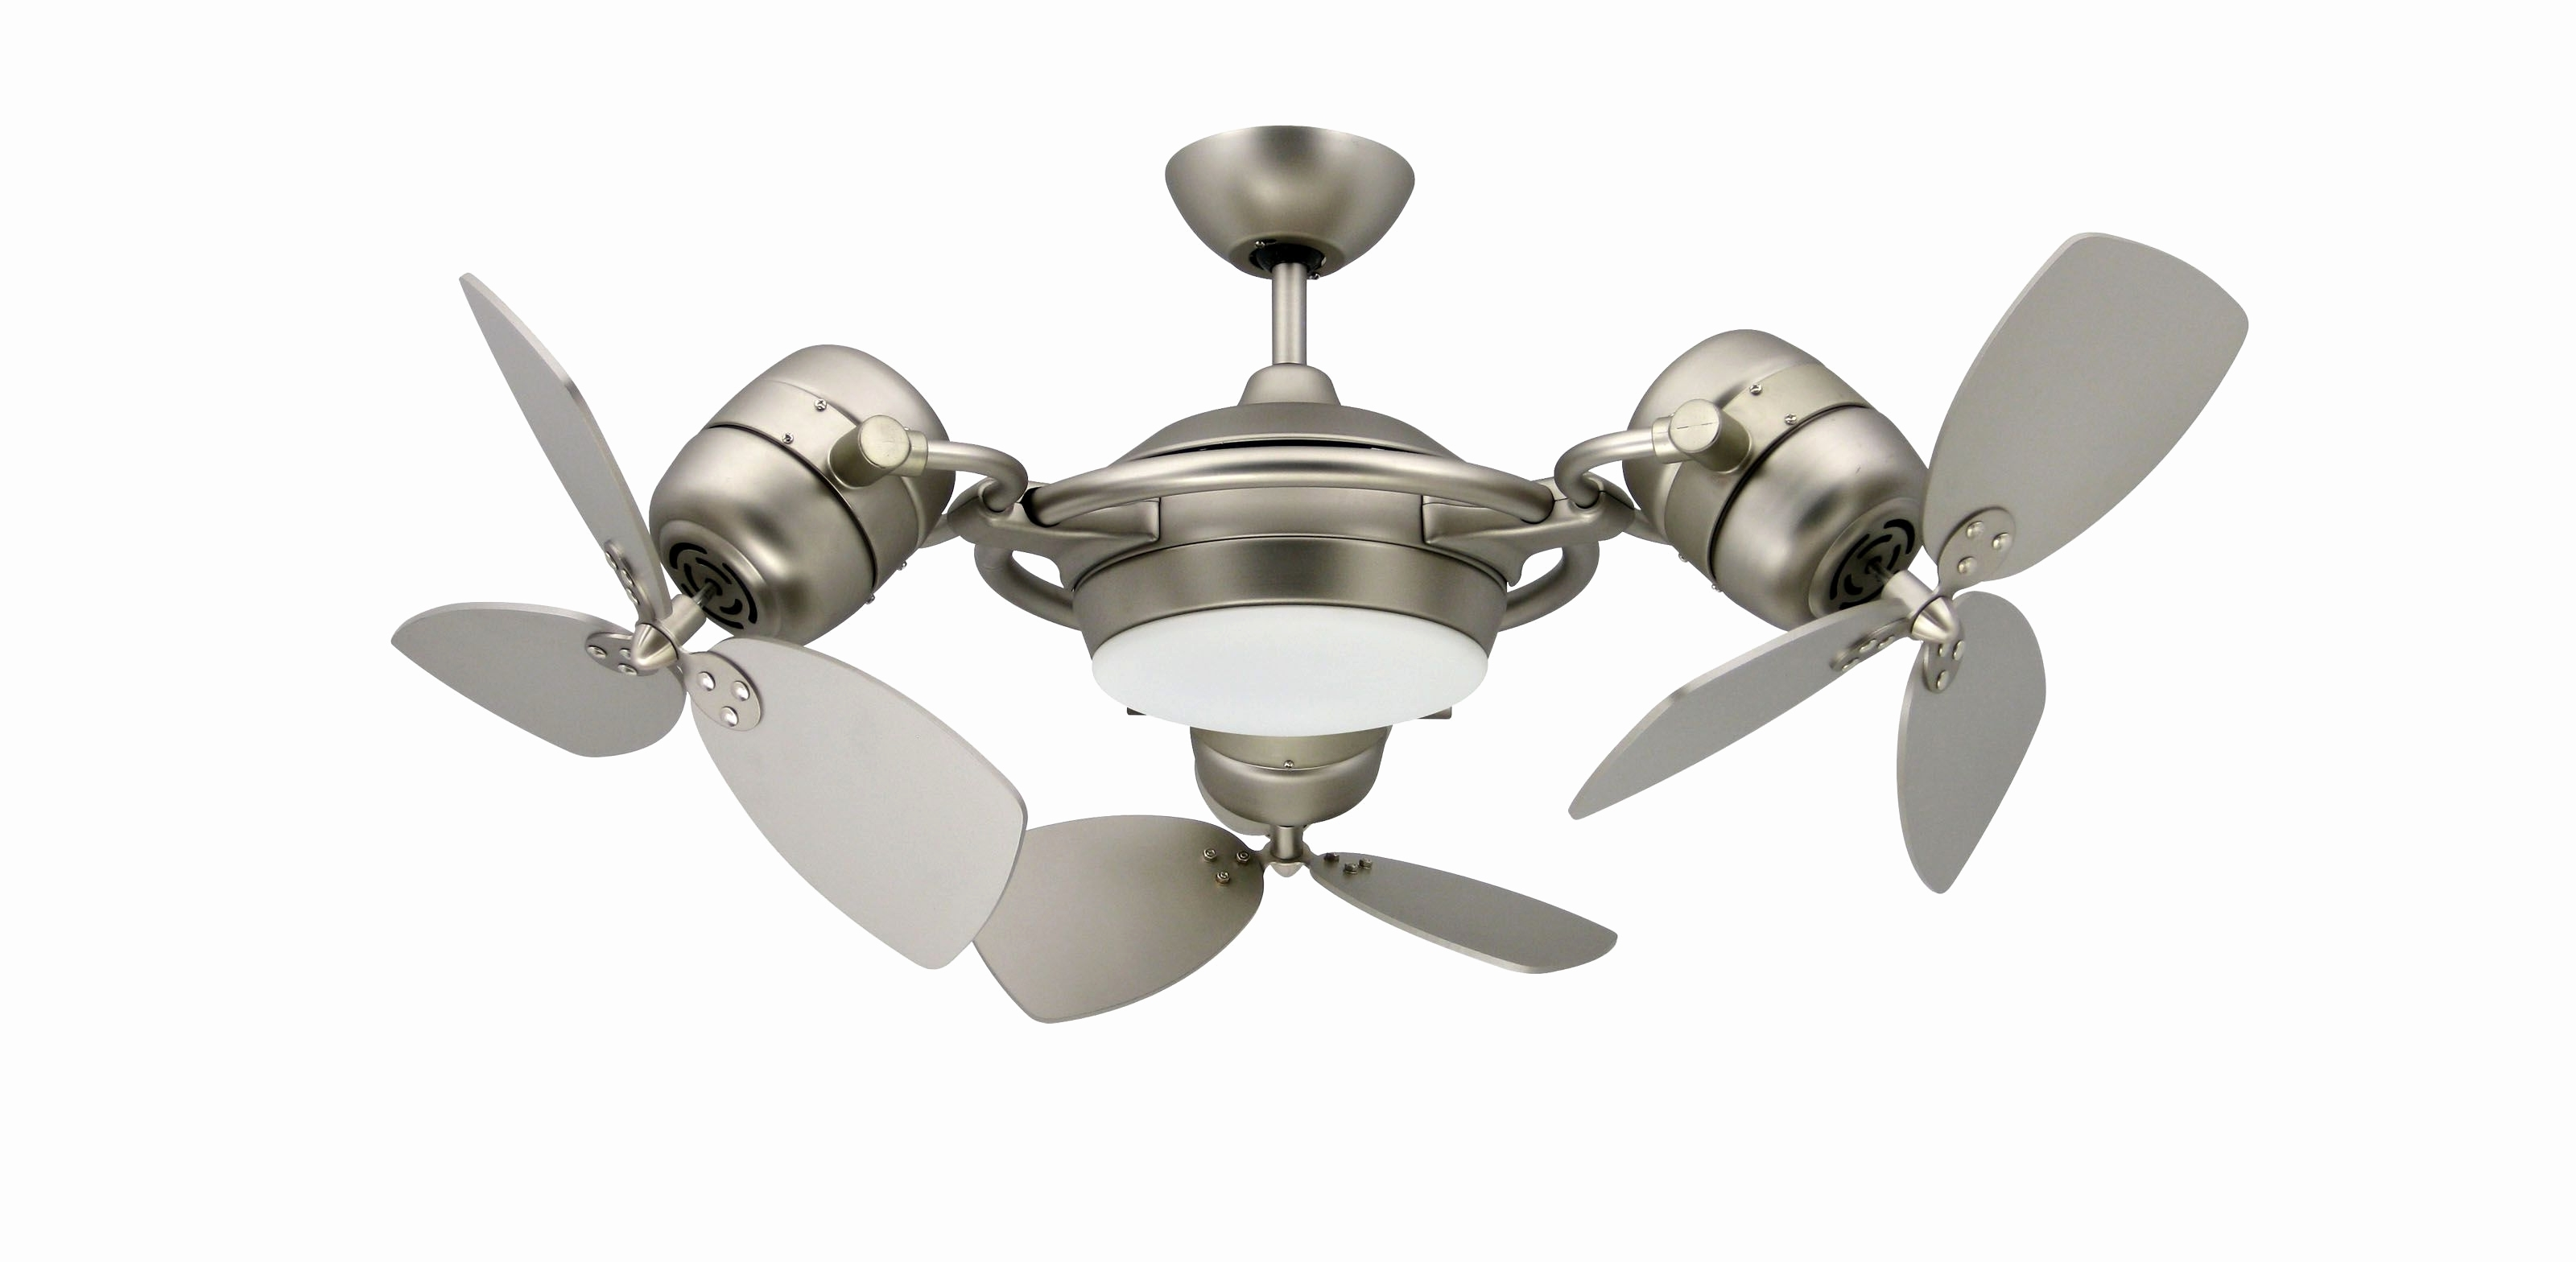 2019 Outdoor Ceiling Fans With Lights Elegant Hunter Douglas Ceiling Fan For Elegant Outdoor Ceiling Fans (View 1 of 20)